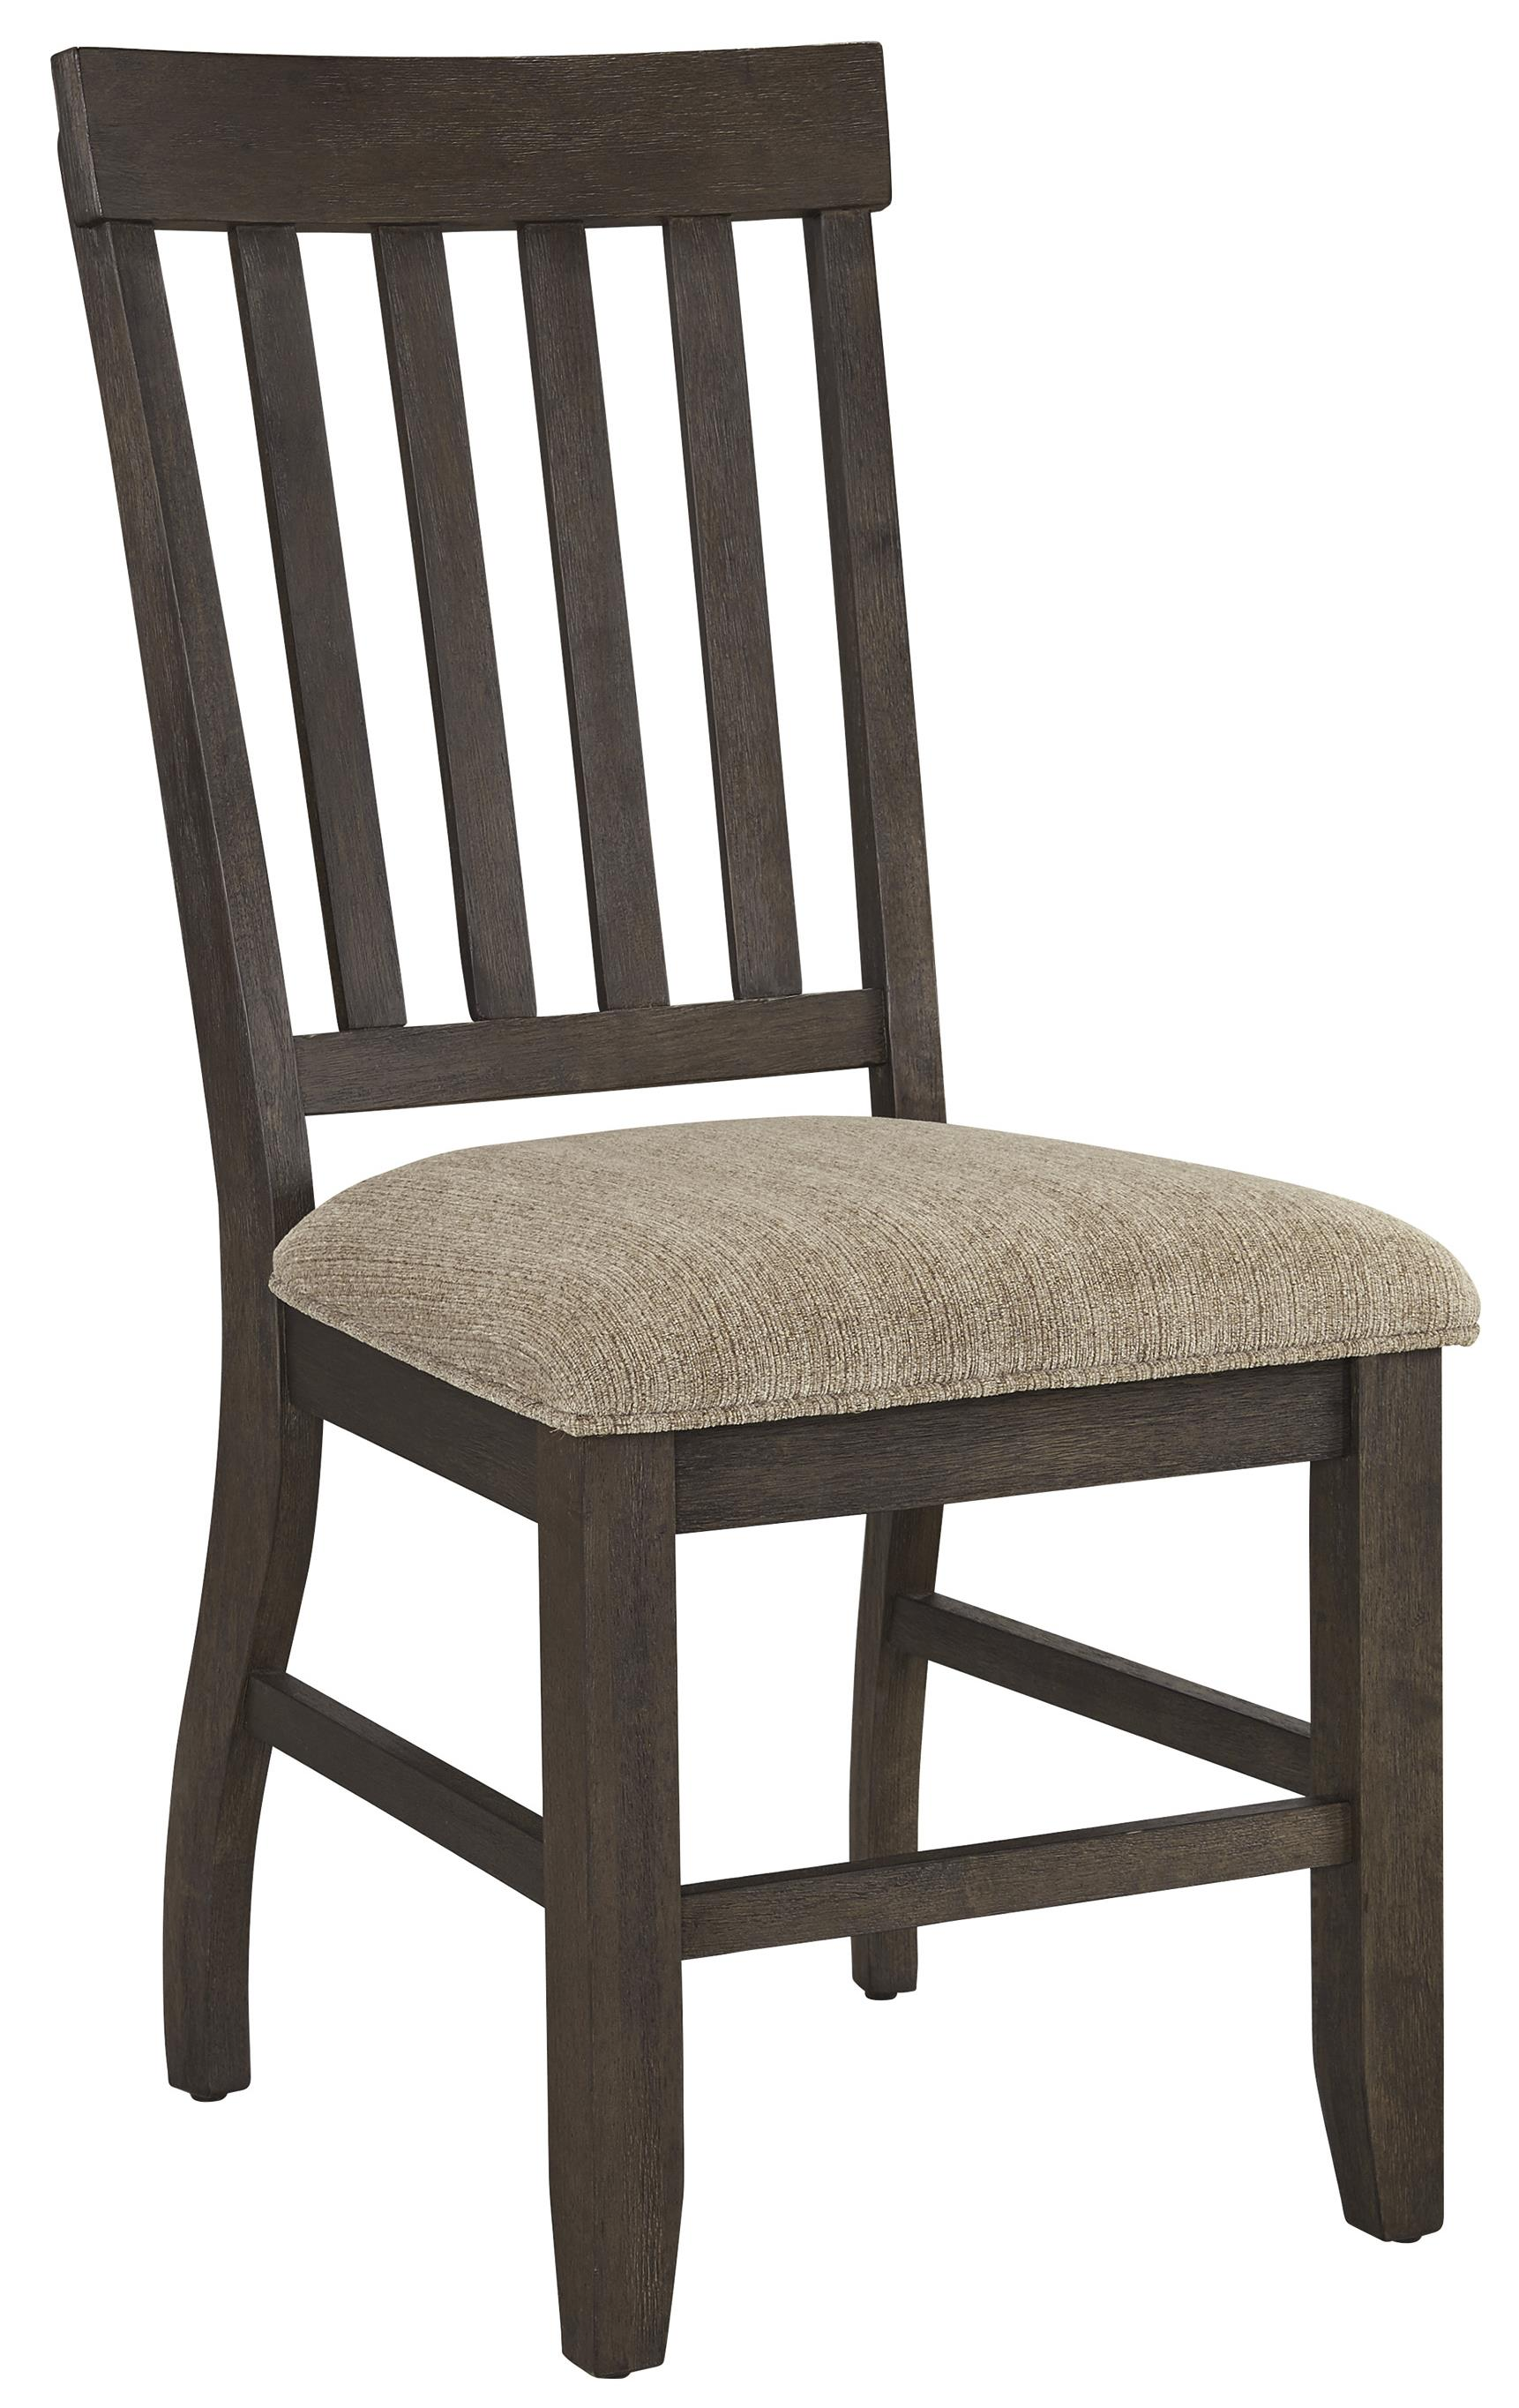 Dresbar Dining Upholstered Side Chair by Signature Design at Fisher Home Furnishings